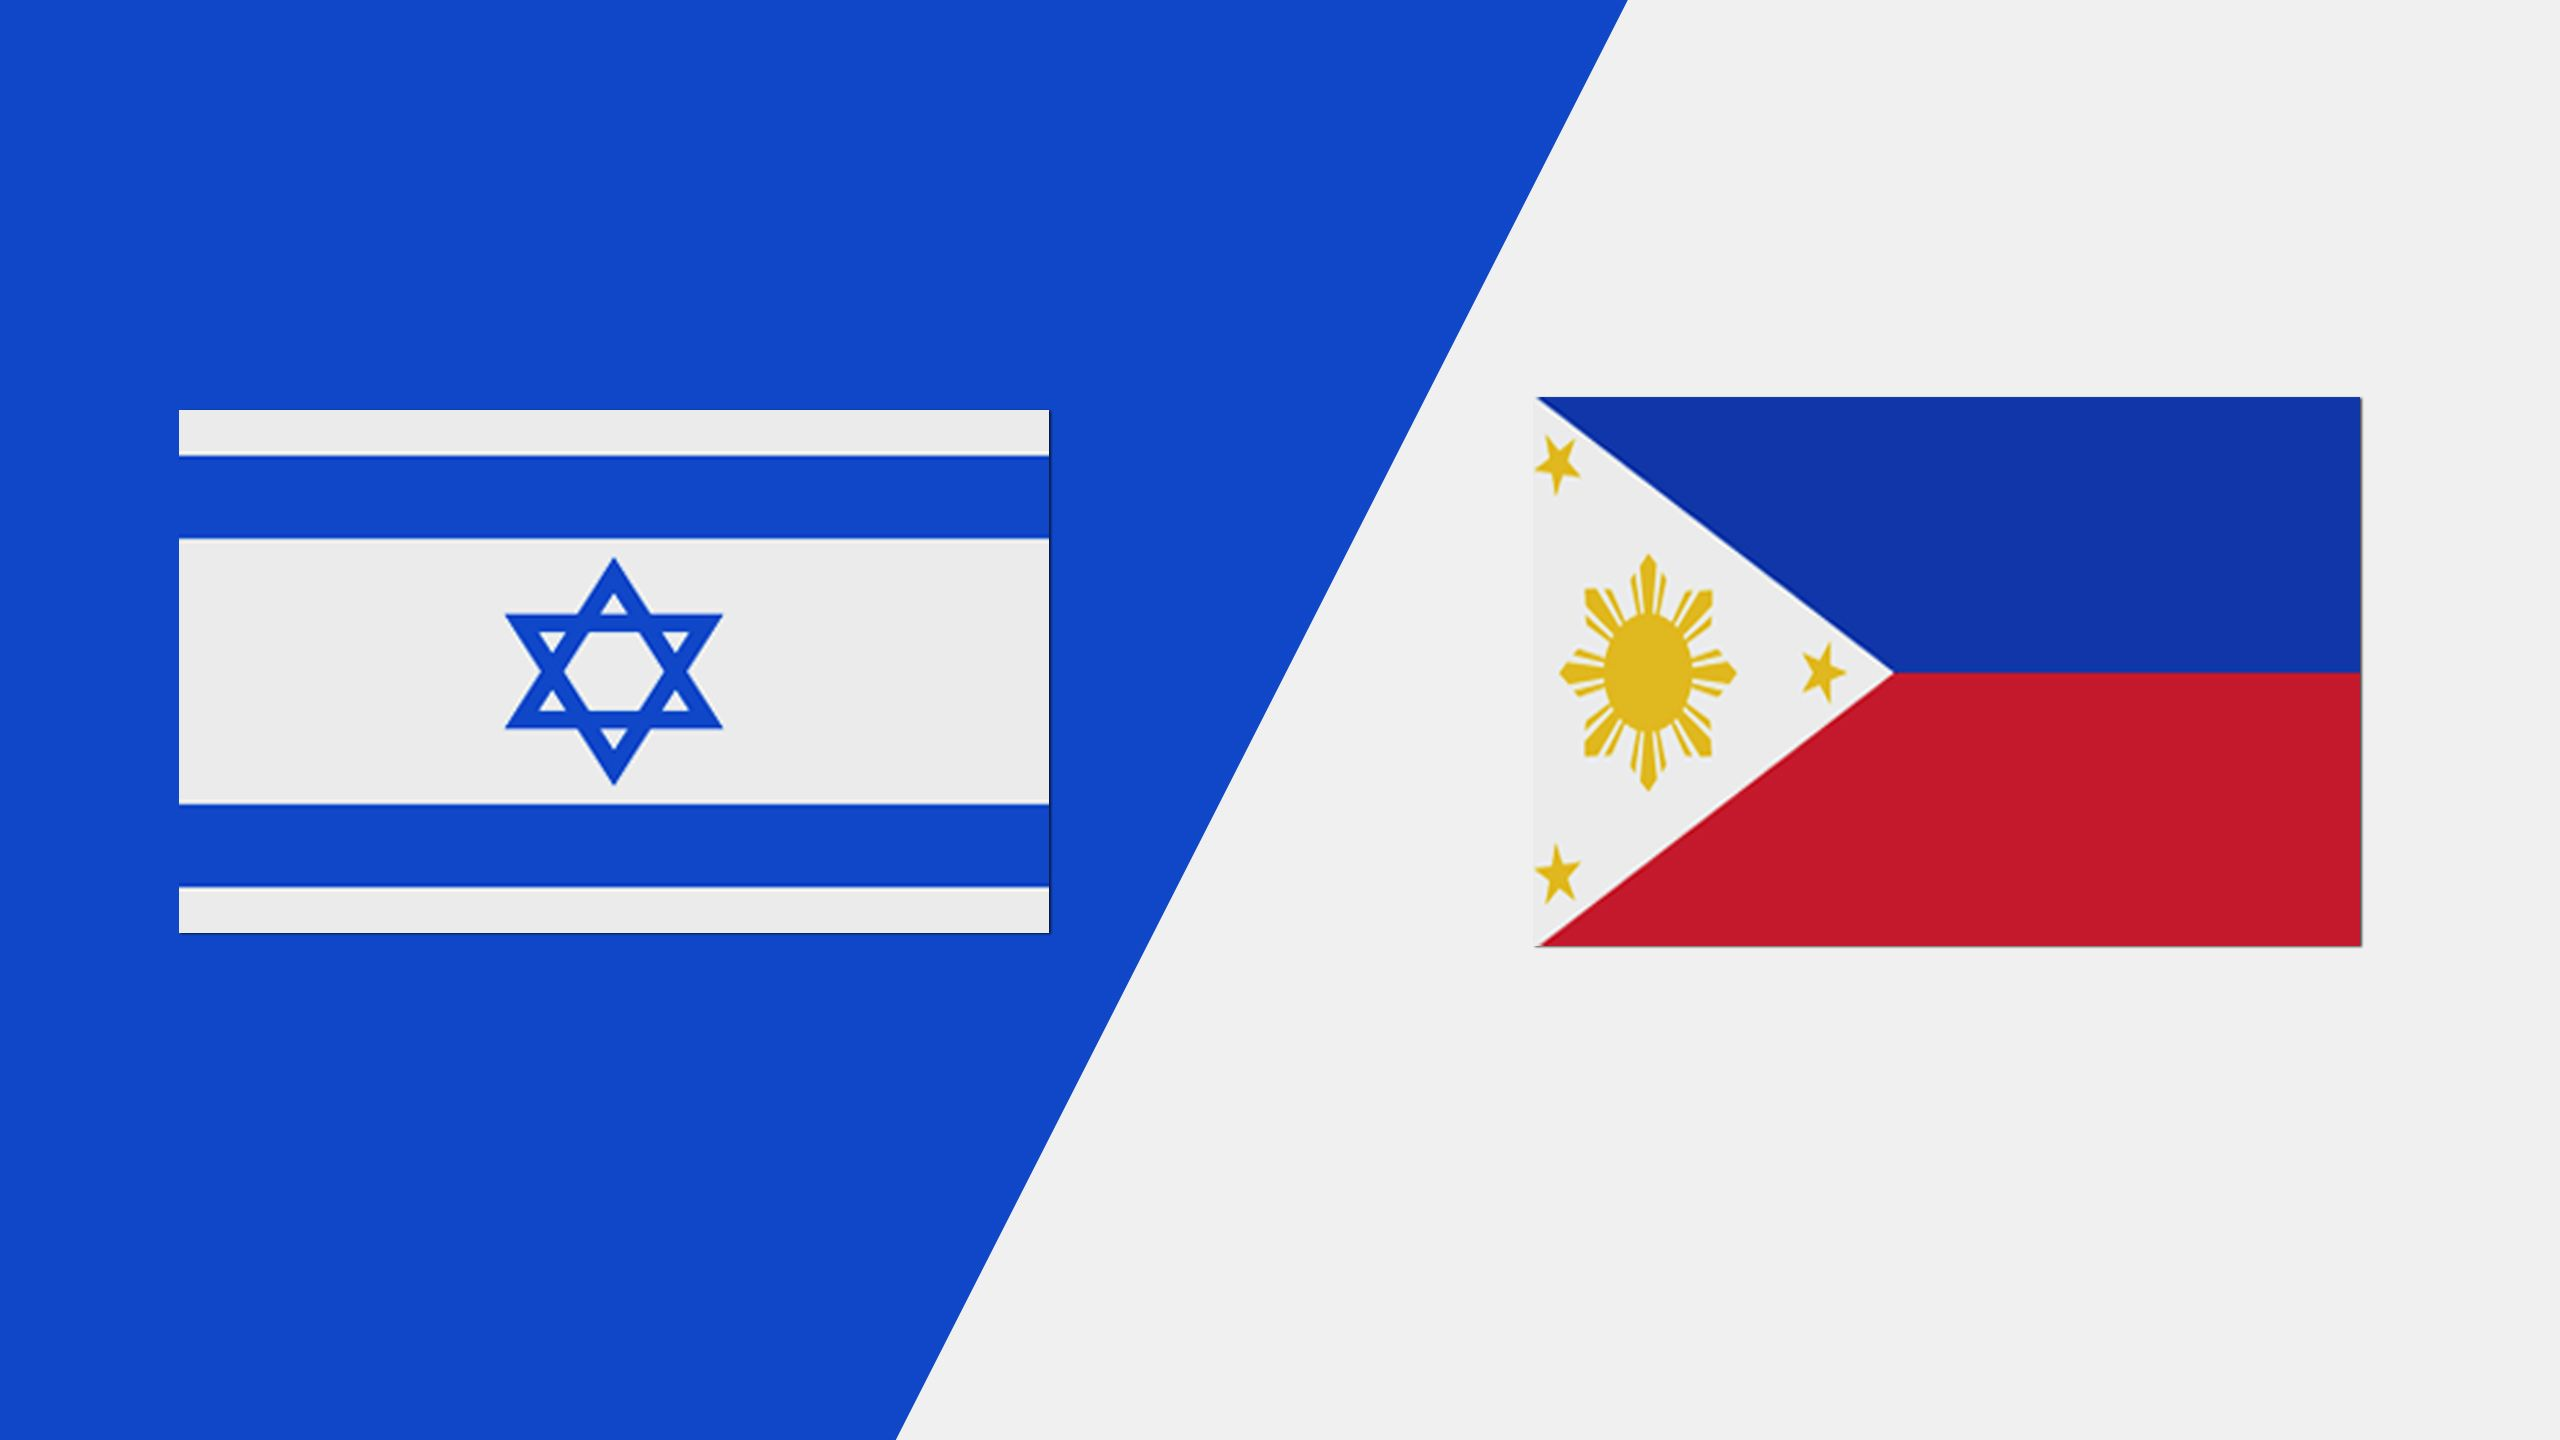 Israel vs. Philippines (2018 FIL World Lacrosse Championships)